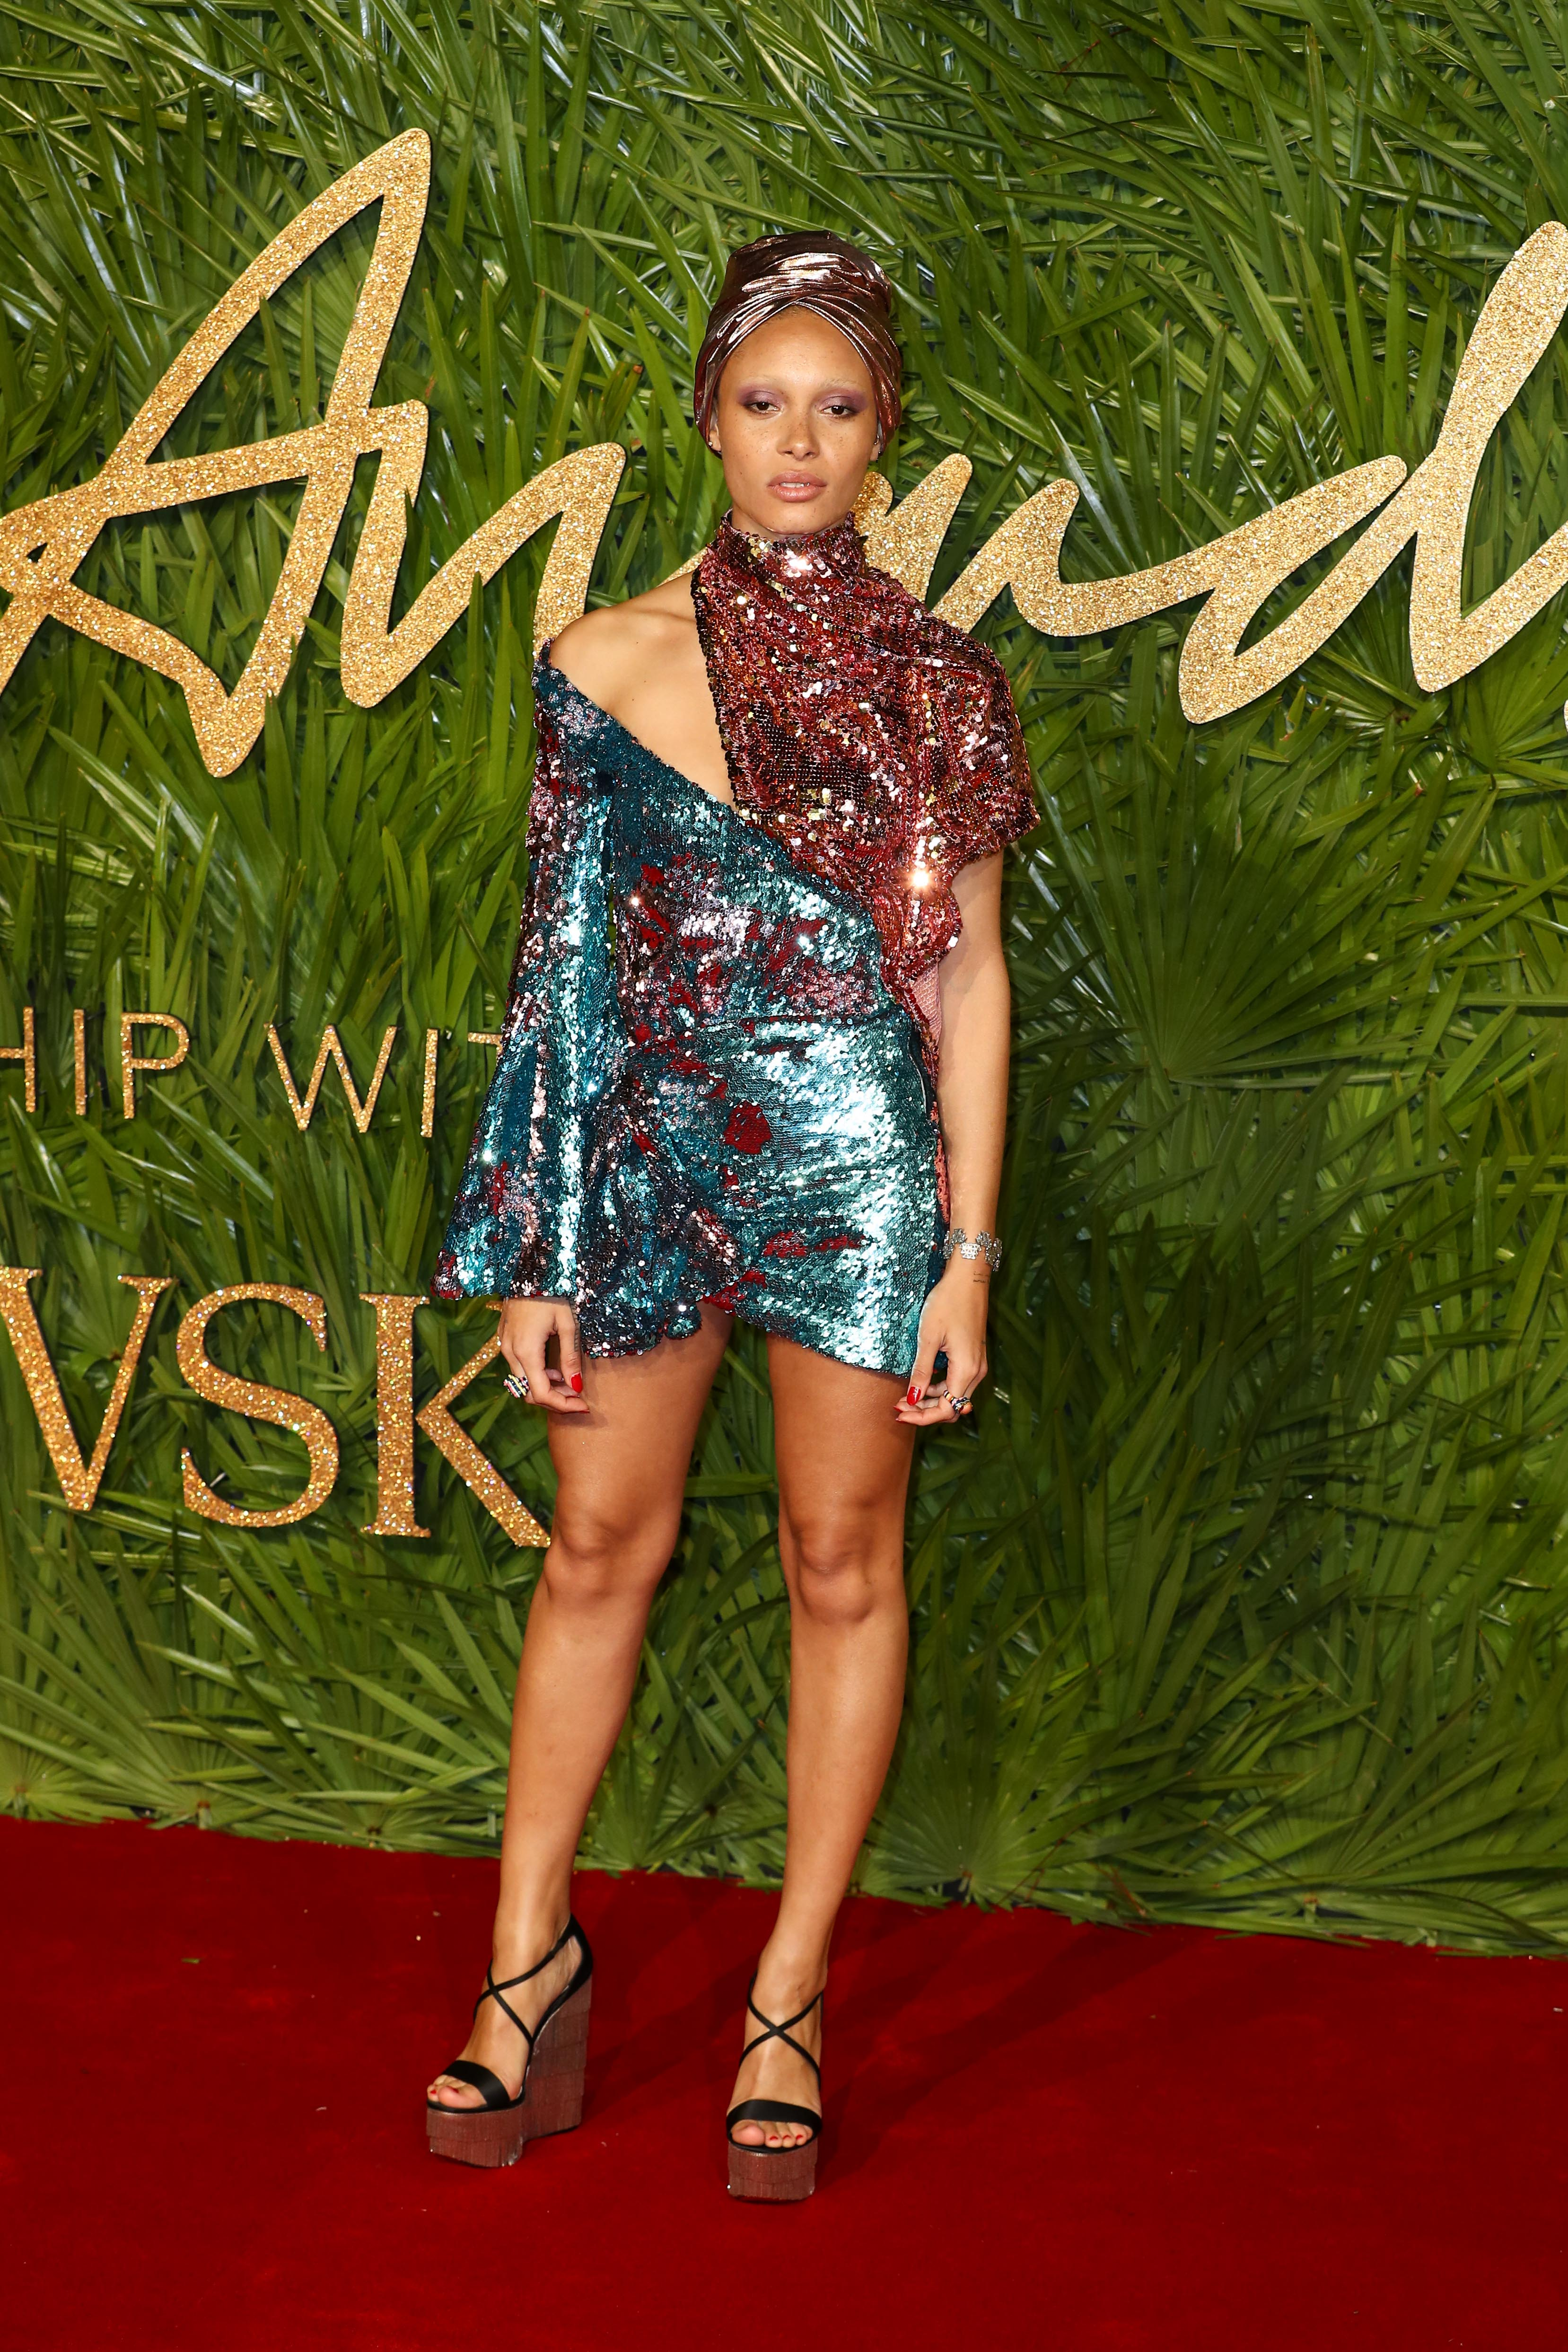 Adwoa Aboah attends The Fashion Awards 2017 in partnership with Swarovski at Royal Albert Hall on December 4, 2017 in London, England.  <P> Pictured: Adwoa Aboah <B>Ref: SPL1632812  041217  </B><BR/> Picture by: Splash News<BR/> </P><P> <B>Splash News and Pictures</B><BR/> Los Angeles:310-821-2666<BR/> New York:212-619-2666<BR/> London:870-934-2666<BR/> <span id=